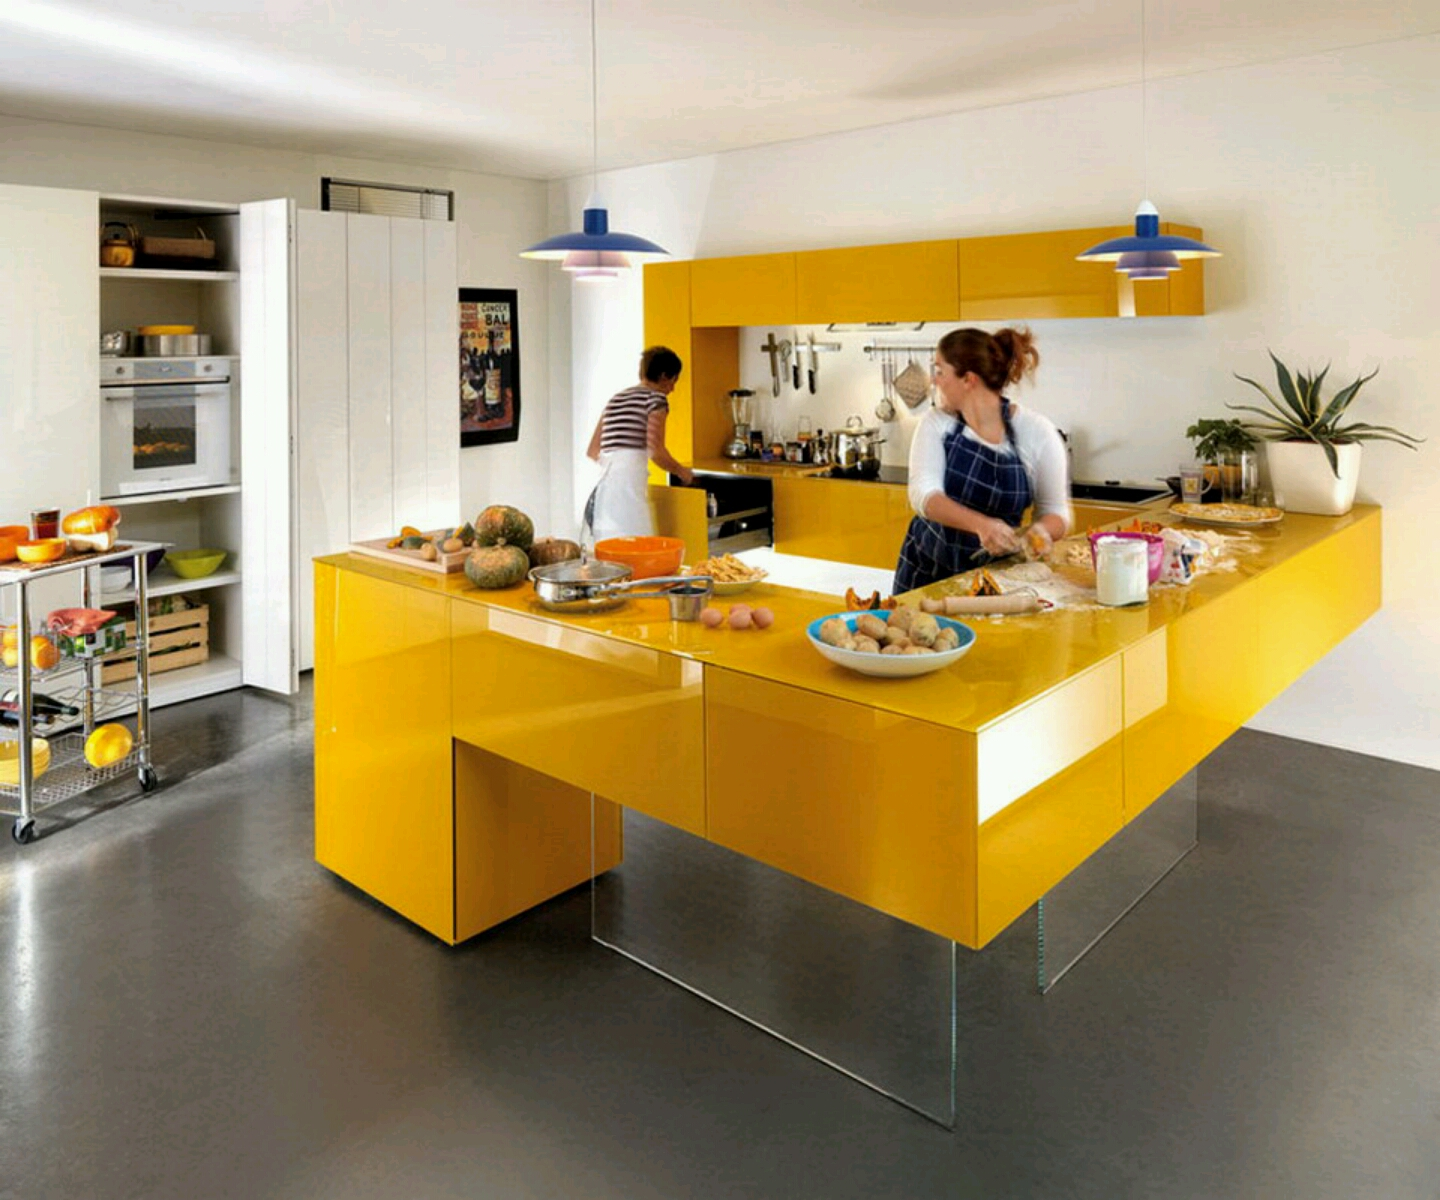 Modern kitchen cabinets designs ideas furniture gallery for Kitchen furniture design images